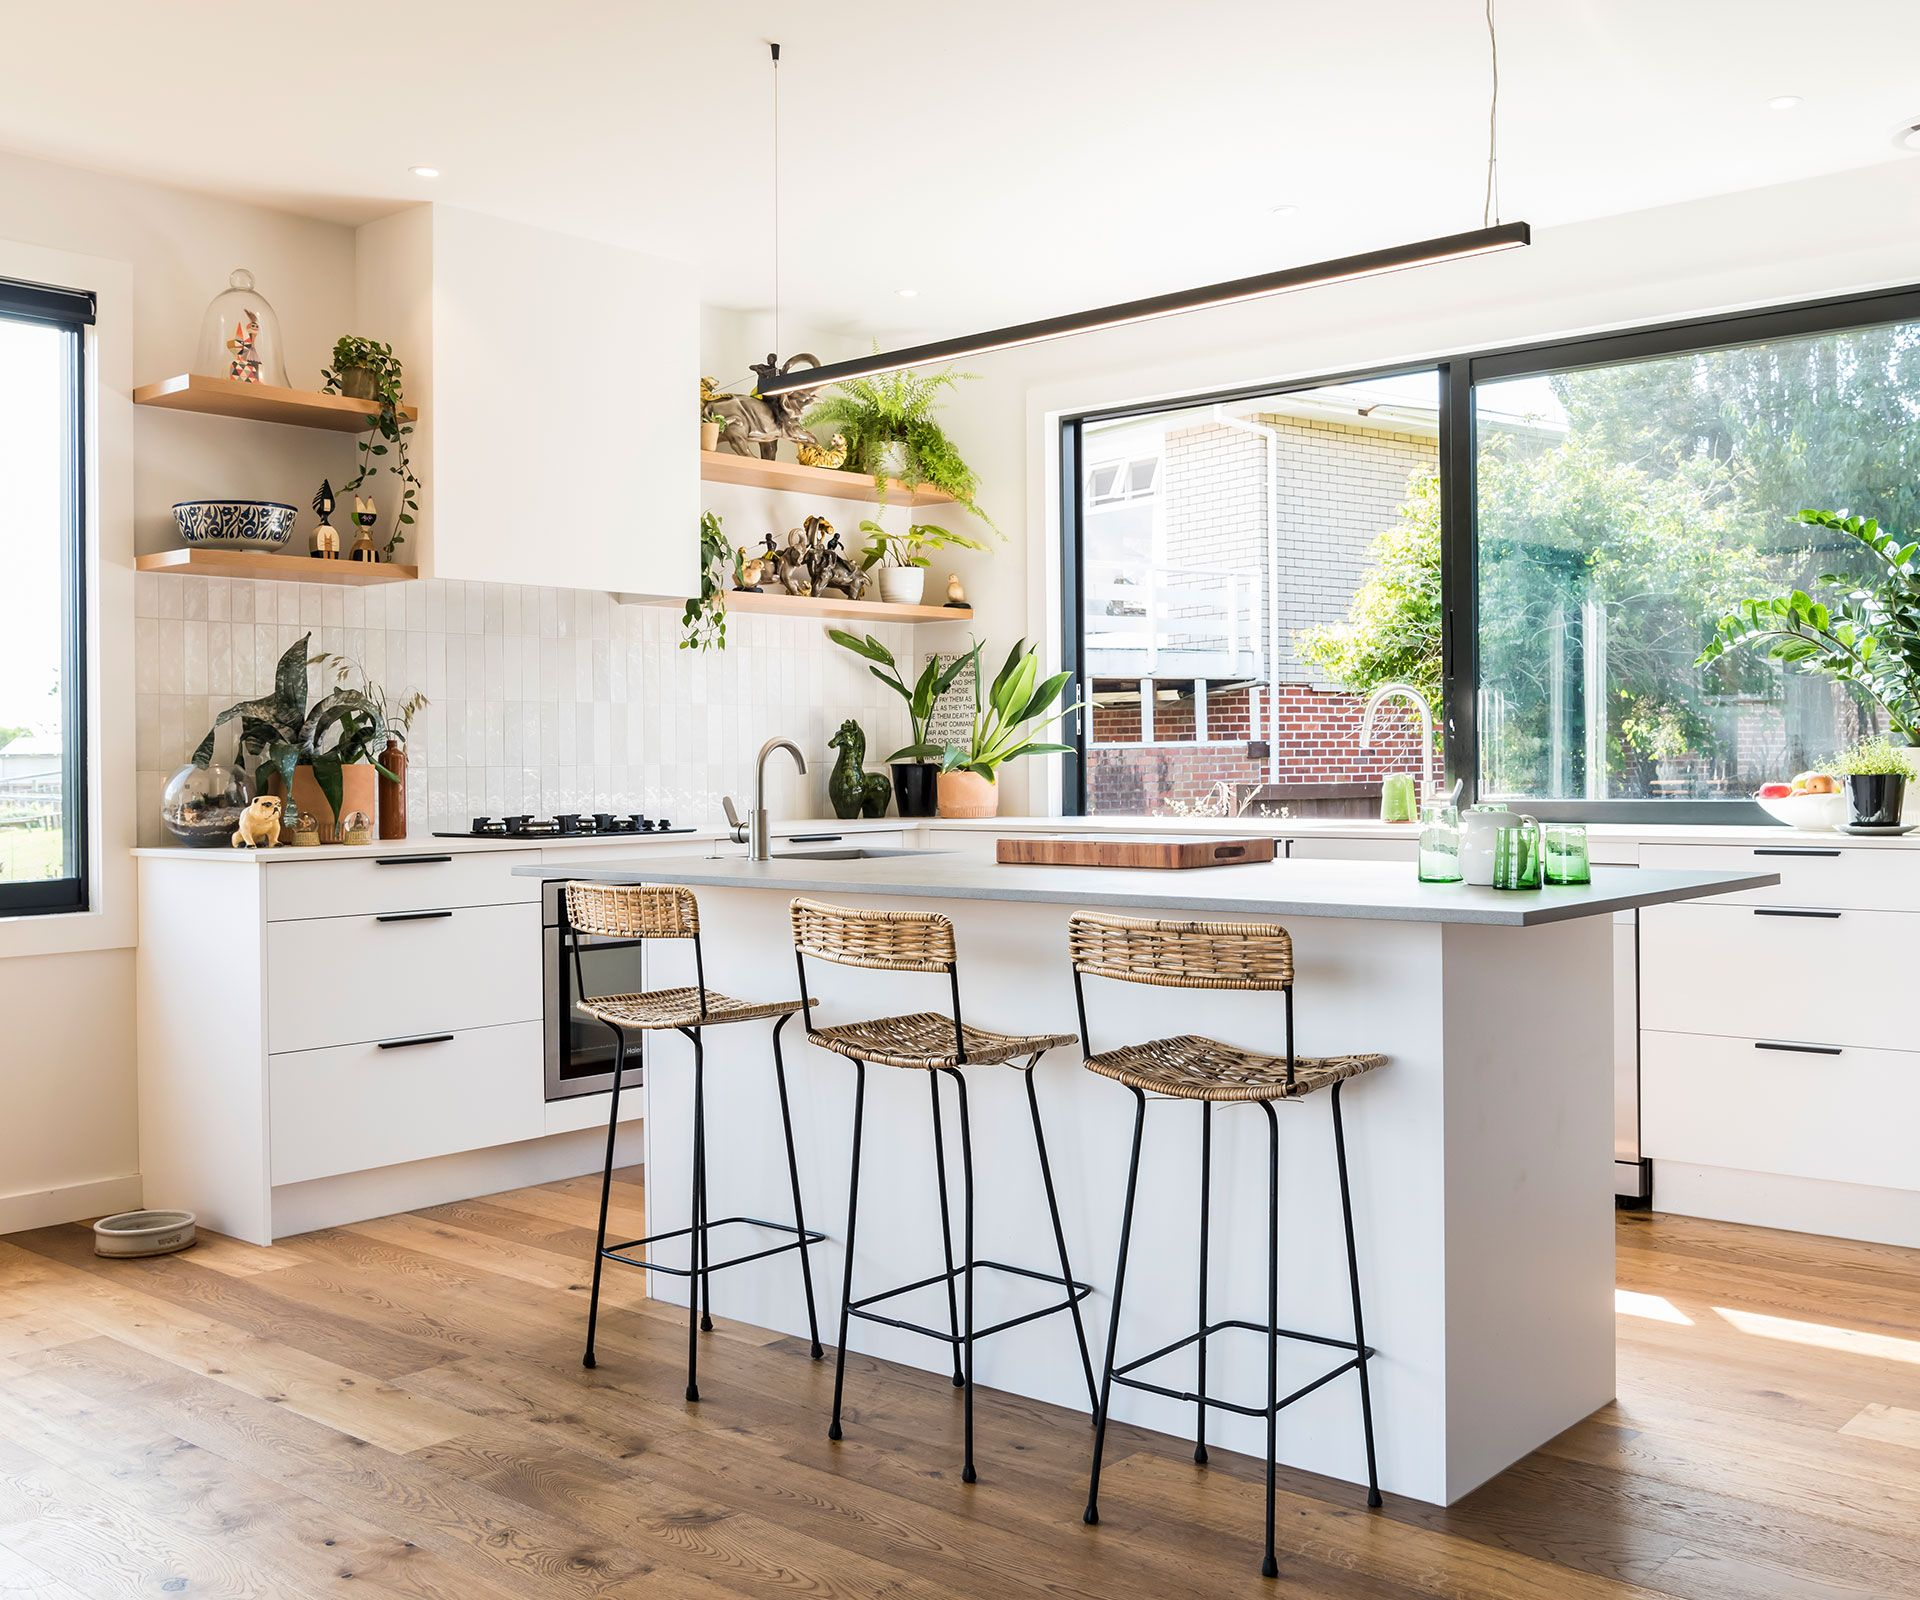 How This Family Built Their First Home On A Small